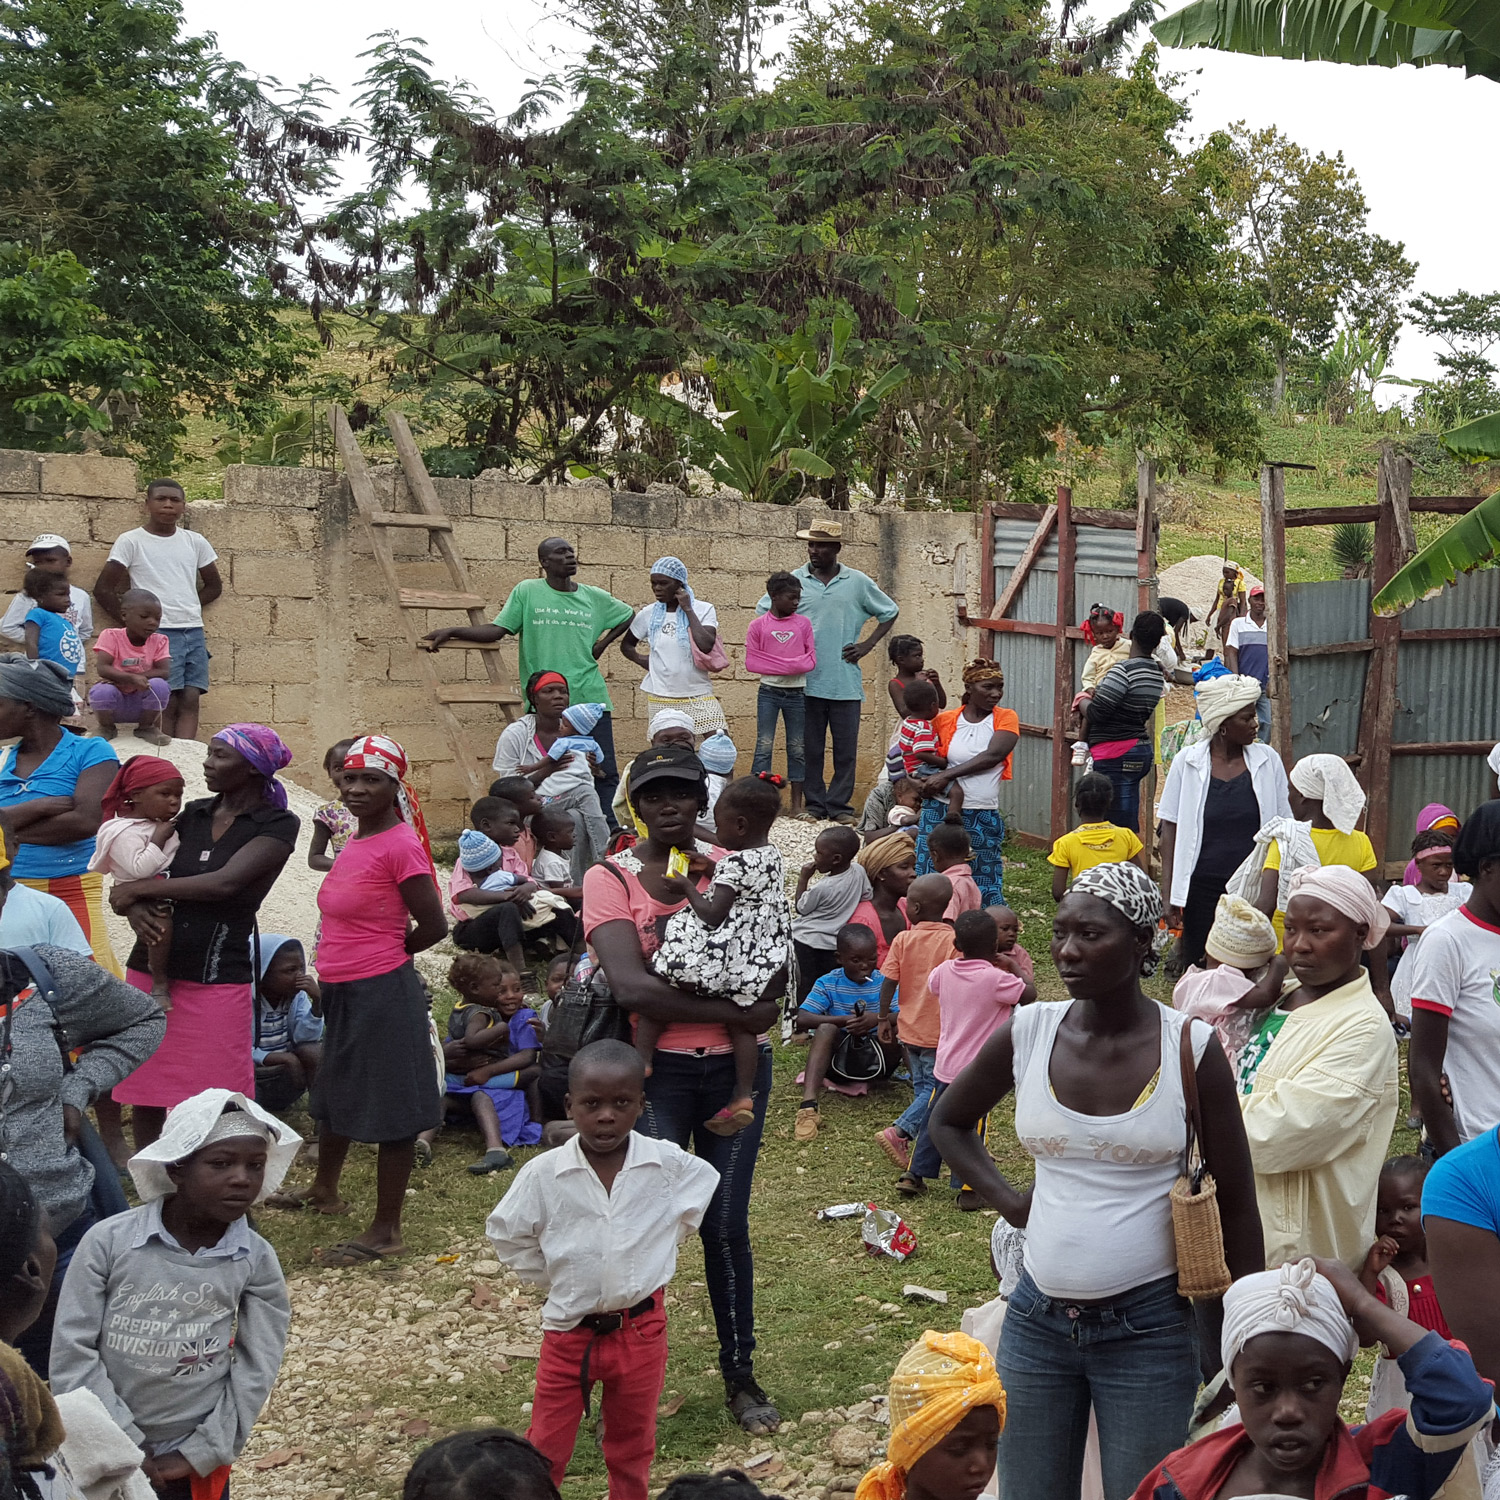 80% of the Haitian people live in poverty; many without access to clean water, health care, proper lodging, or an adequate food supply. -